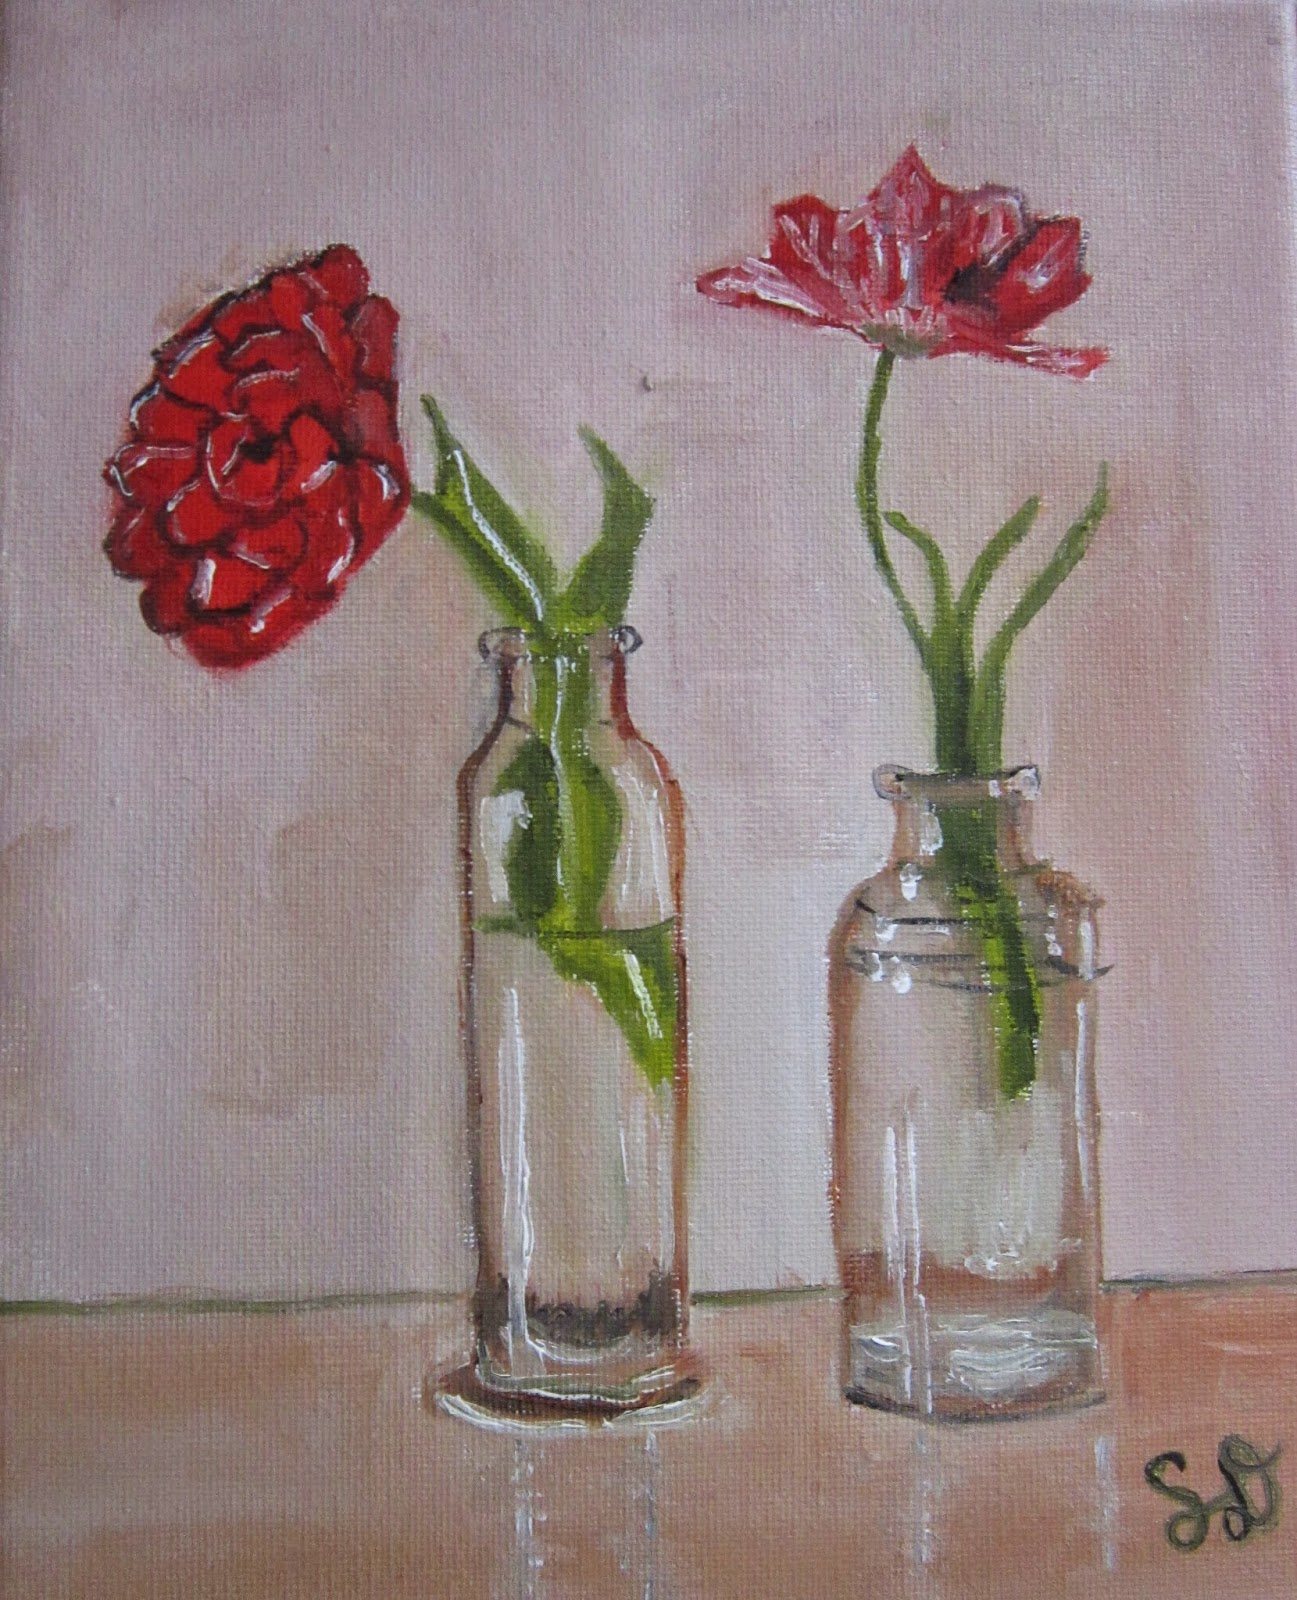 The blog of samdoum art by samdoum day 15 of 30 in 30 for How to paint glass with oil paint